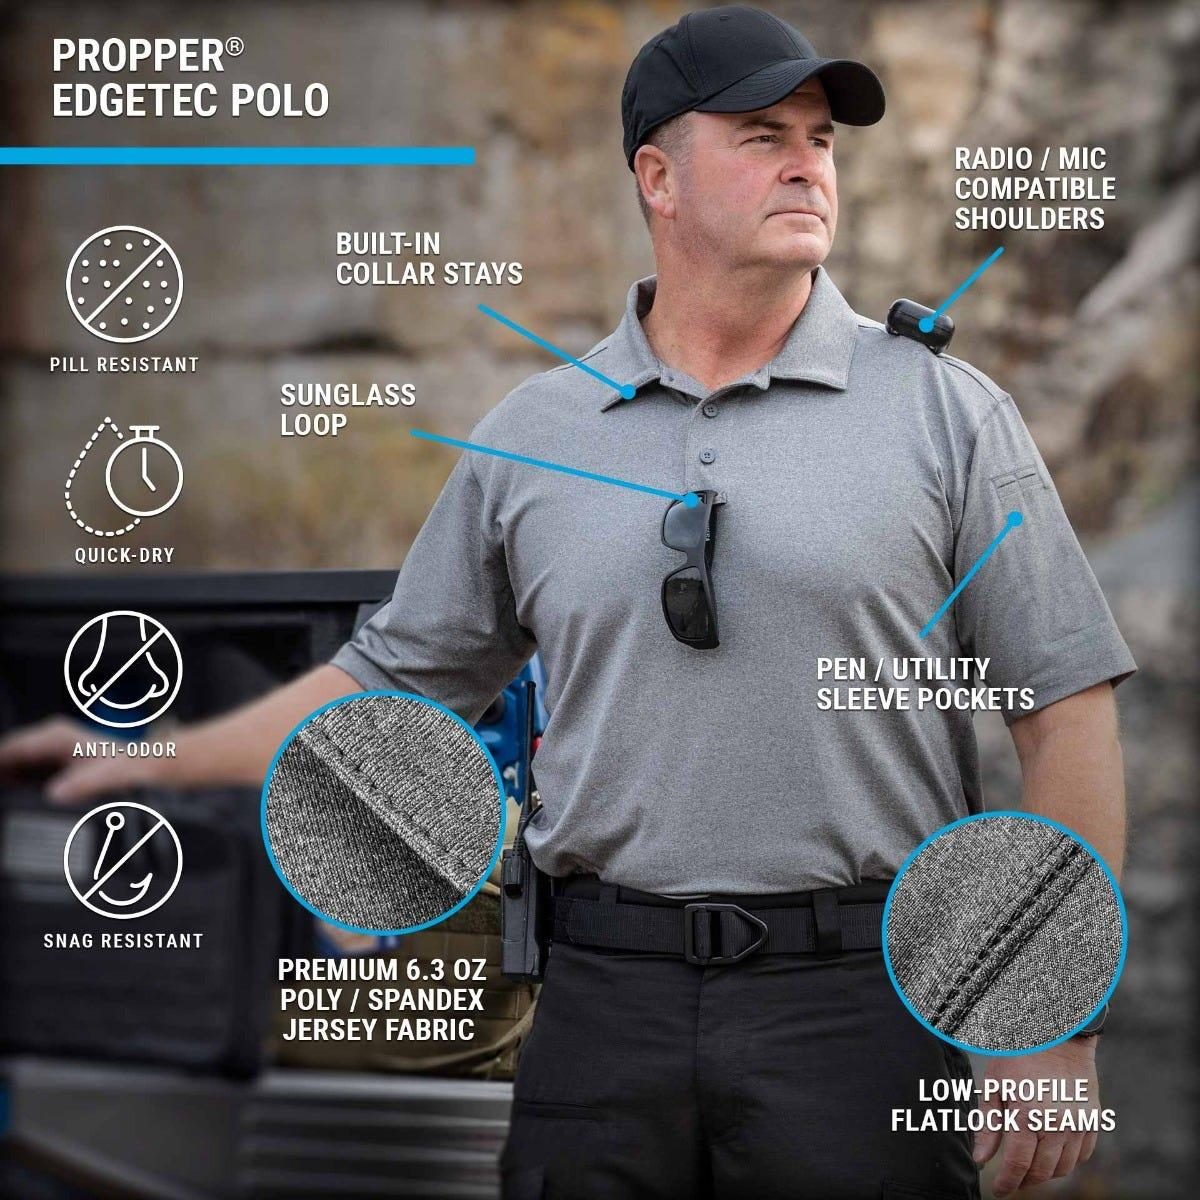 Men's range EdgeTec polo is great fitting and offers mic clips, sunglass loop, flatlock seams and preimum fabric for performance.